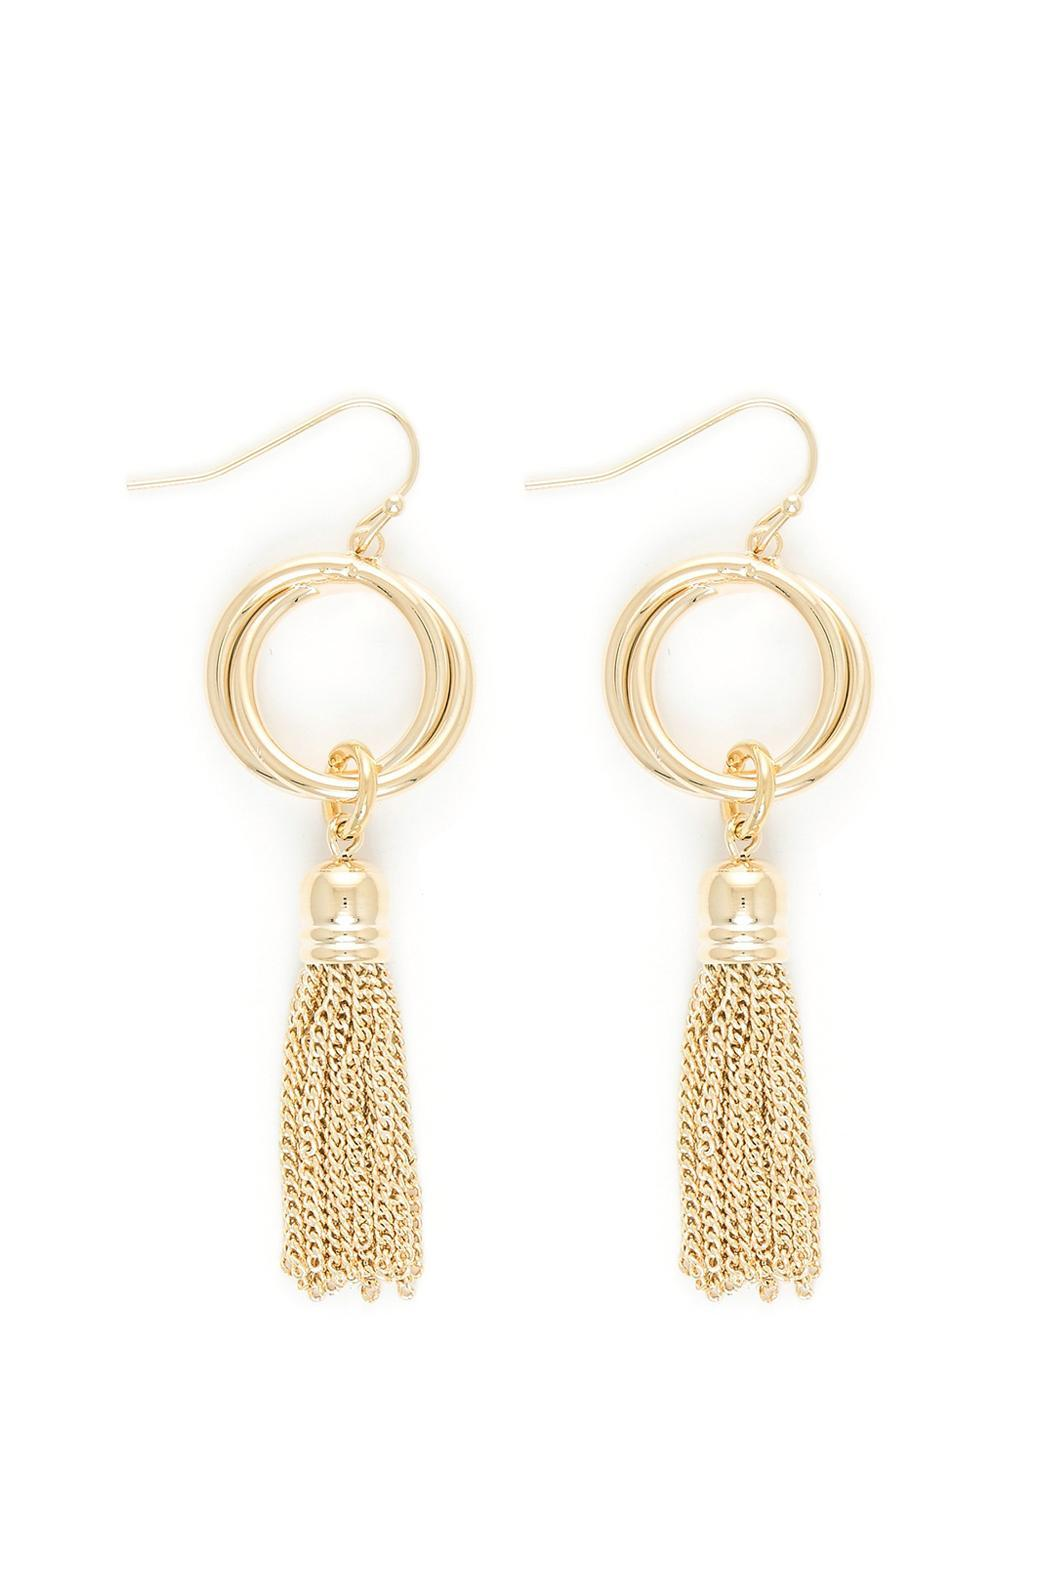 Wild Lilies Jewelry  Gold Fringe Earrings - Main Image